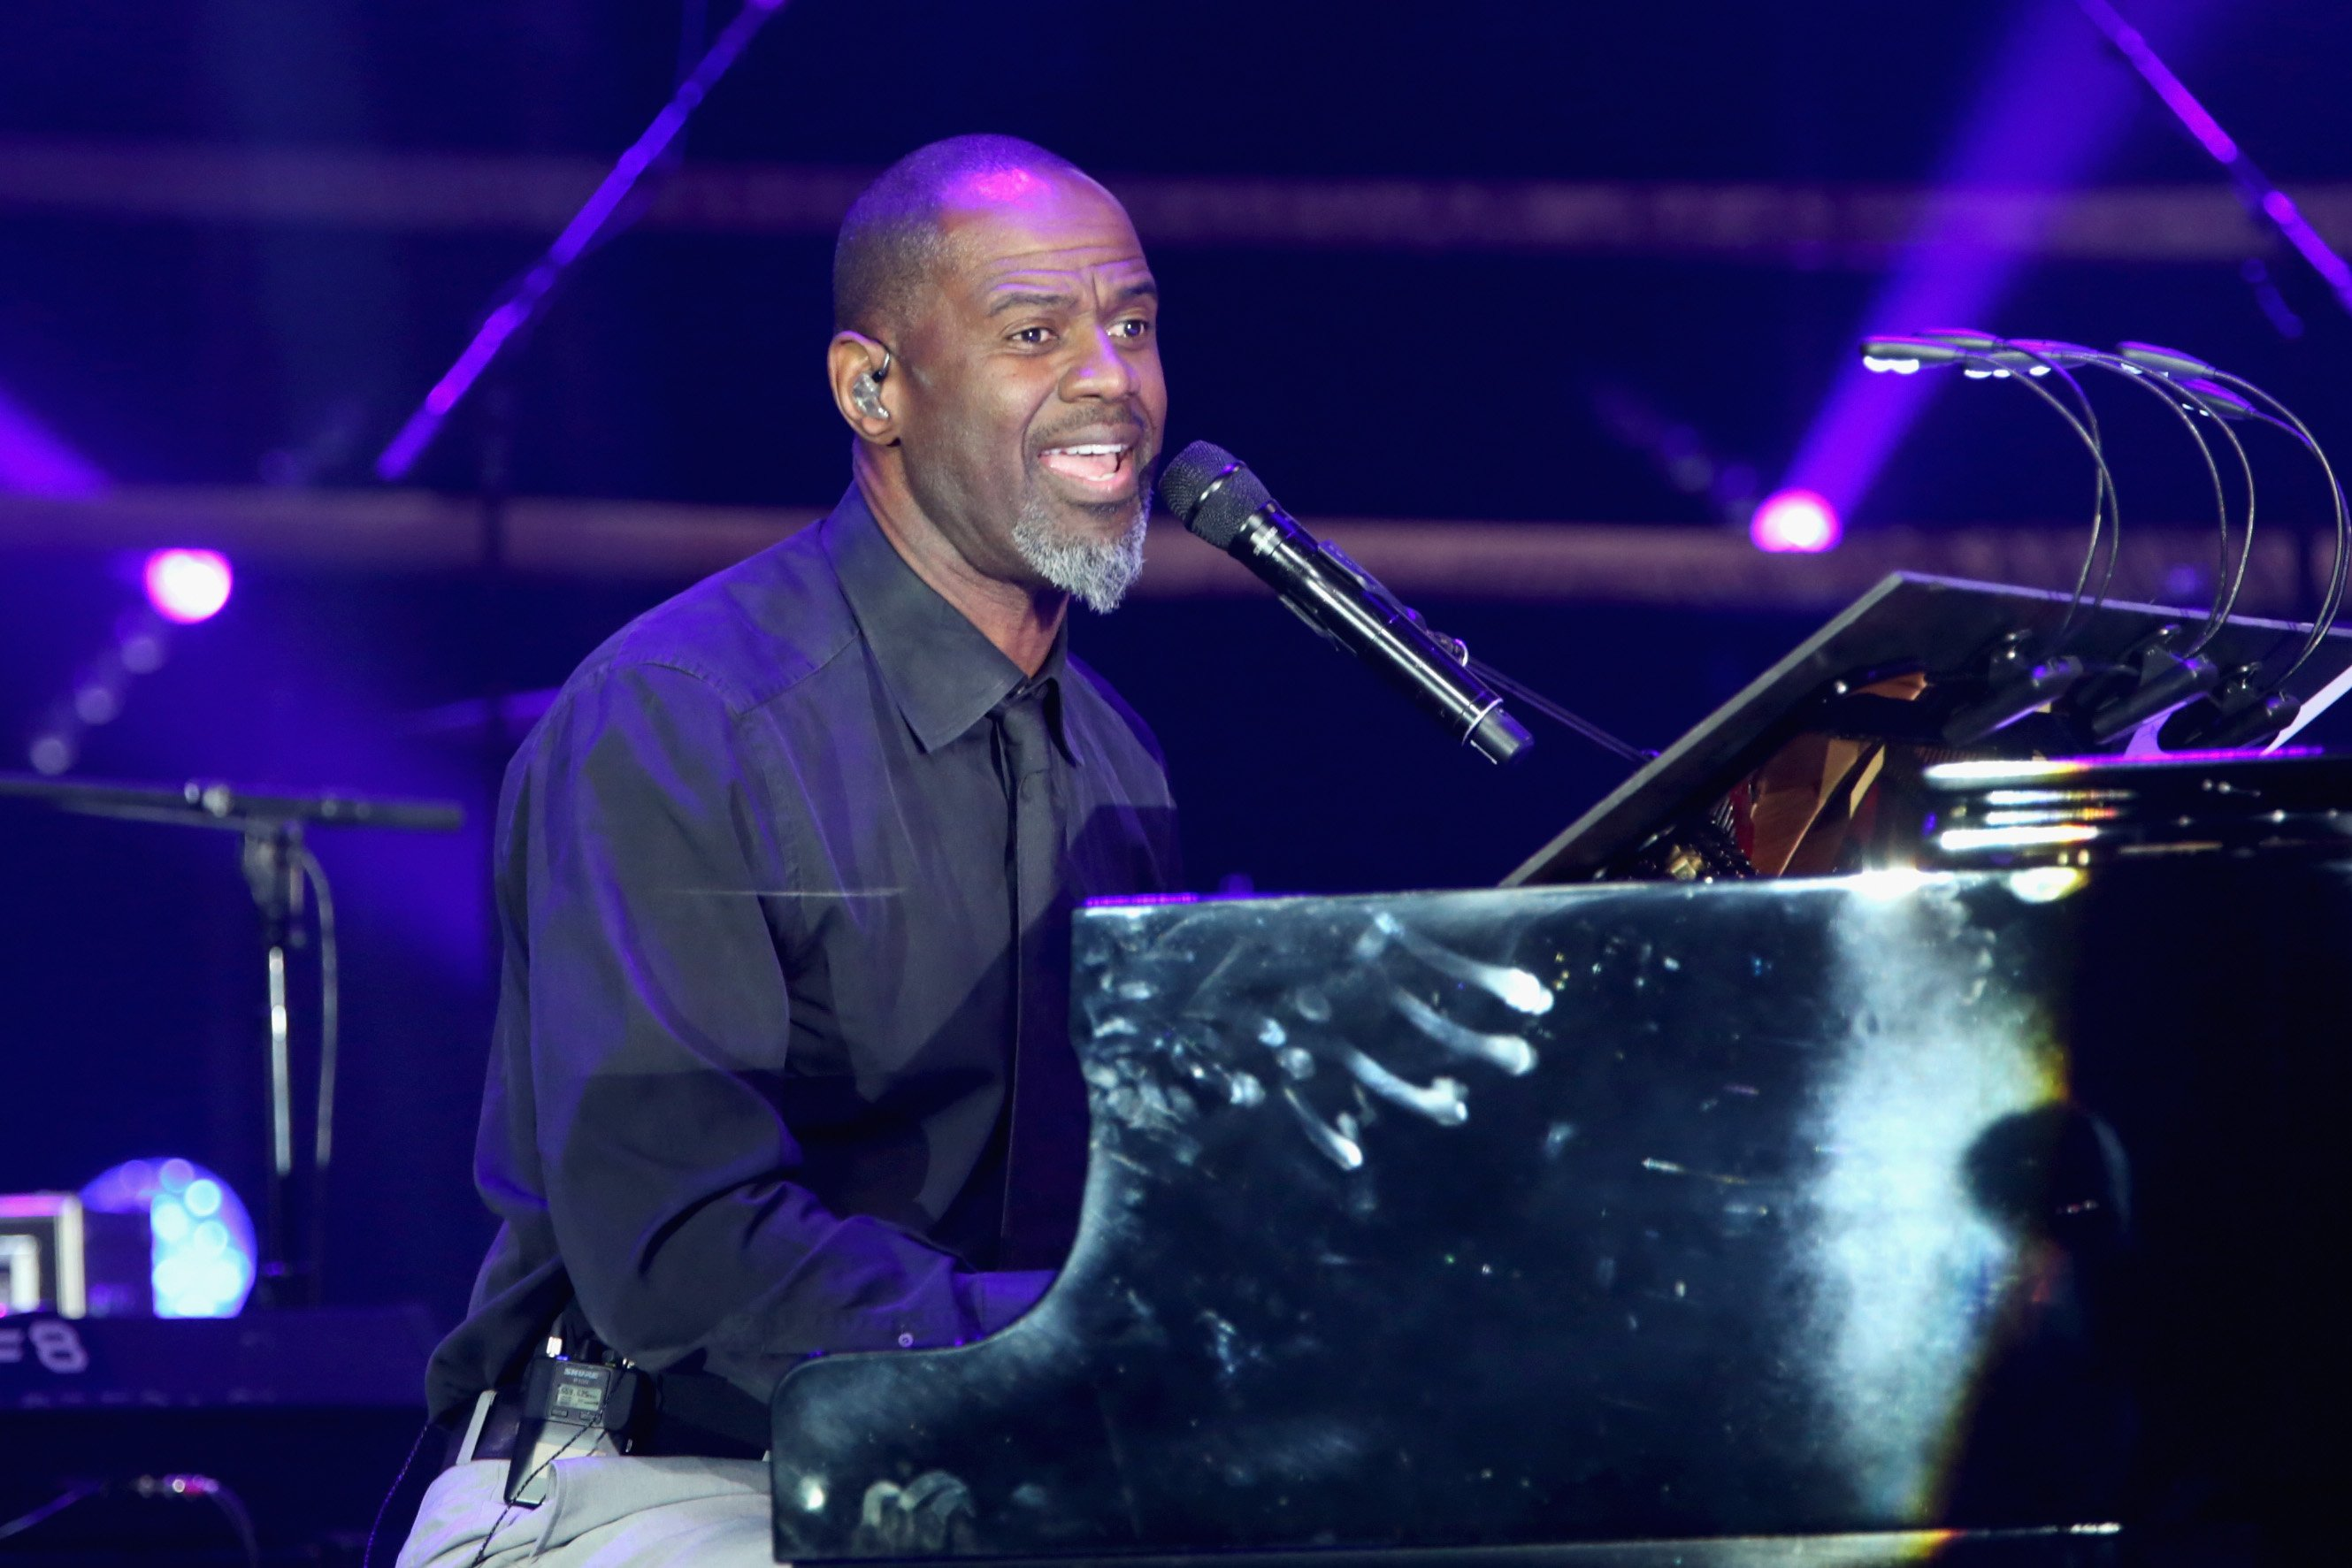 Brian McKnight performs onstage in Phoenix, Arizona on Mar. 18, 2017 | Photo: Getty Images